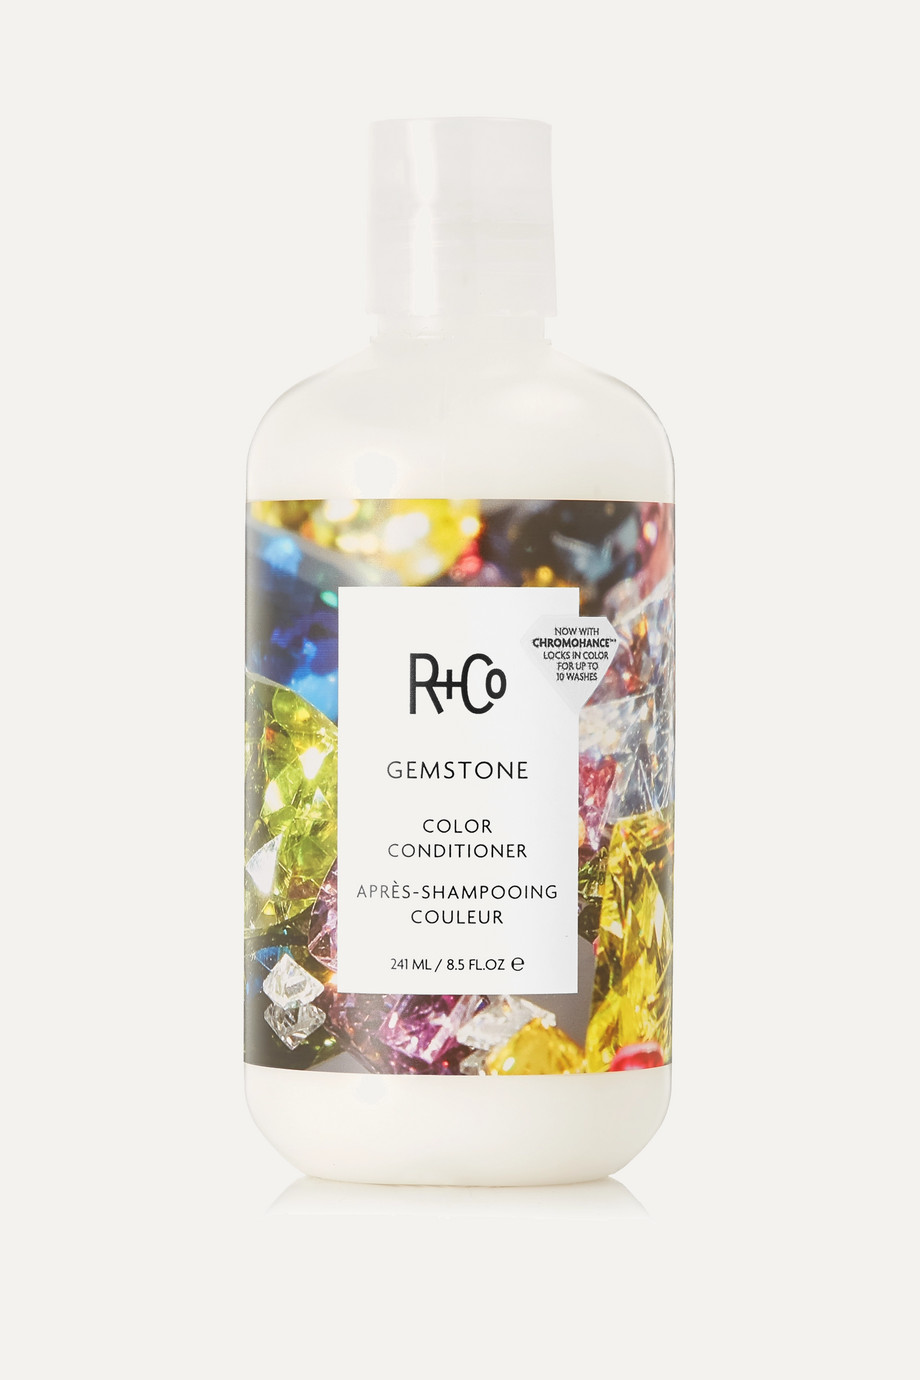 R+Co Gemstone Color Conditioner, 241ml